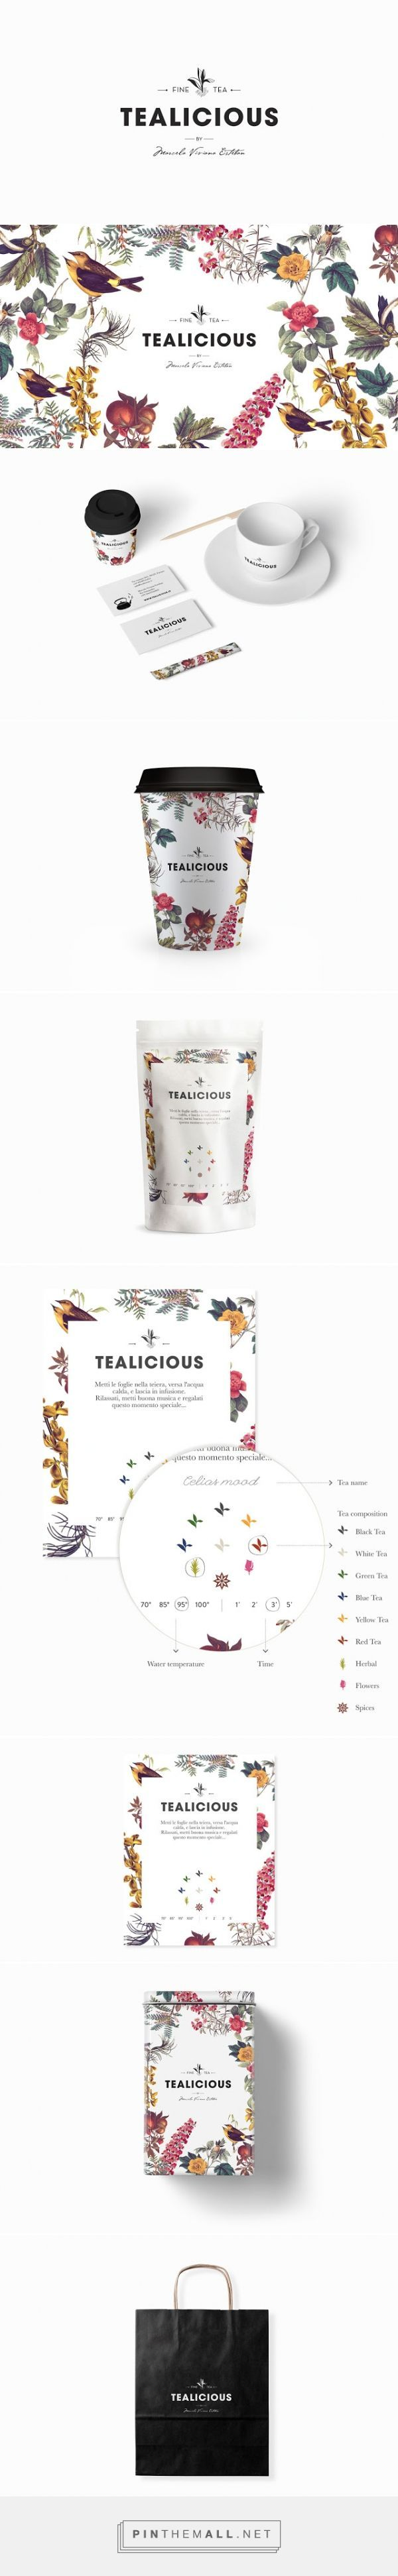 Tealicious ‪#‎Tea‬ Shop ‪#‎packaging‬ designed by Alvarez Juana - http://www.packagingoftheworld.com/2015/03/tealicious.html